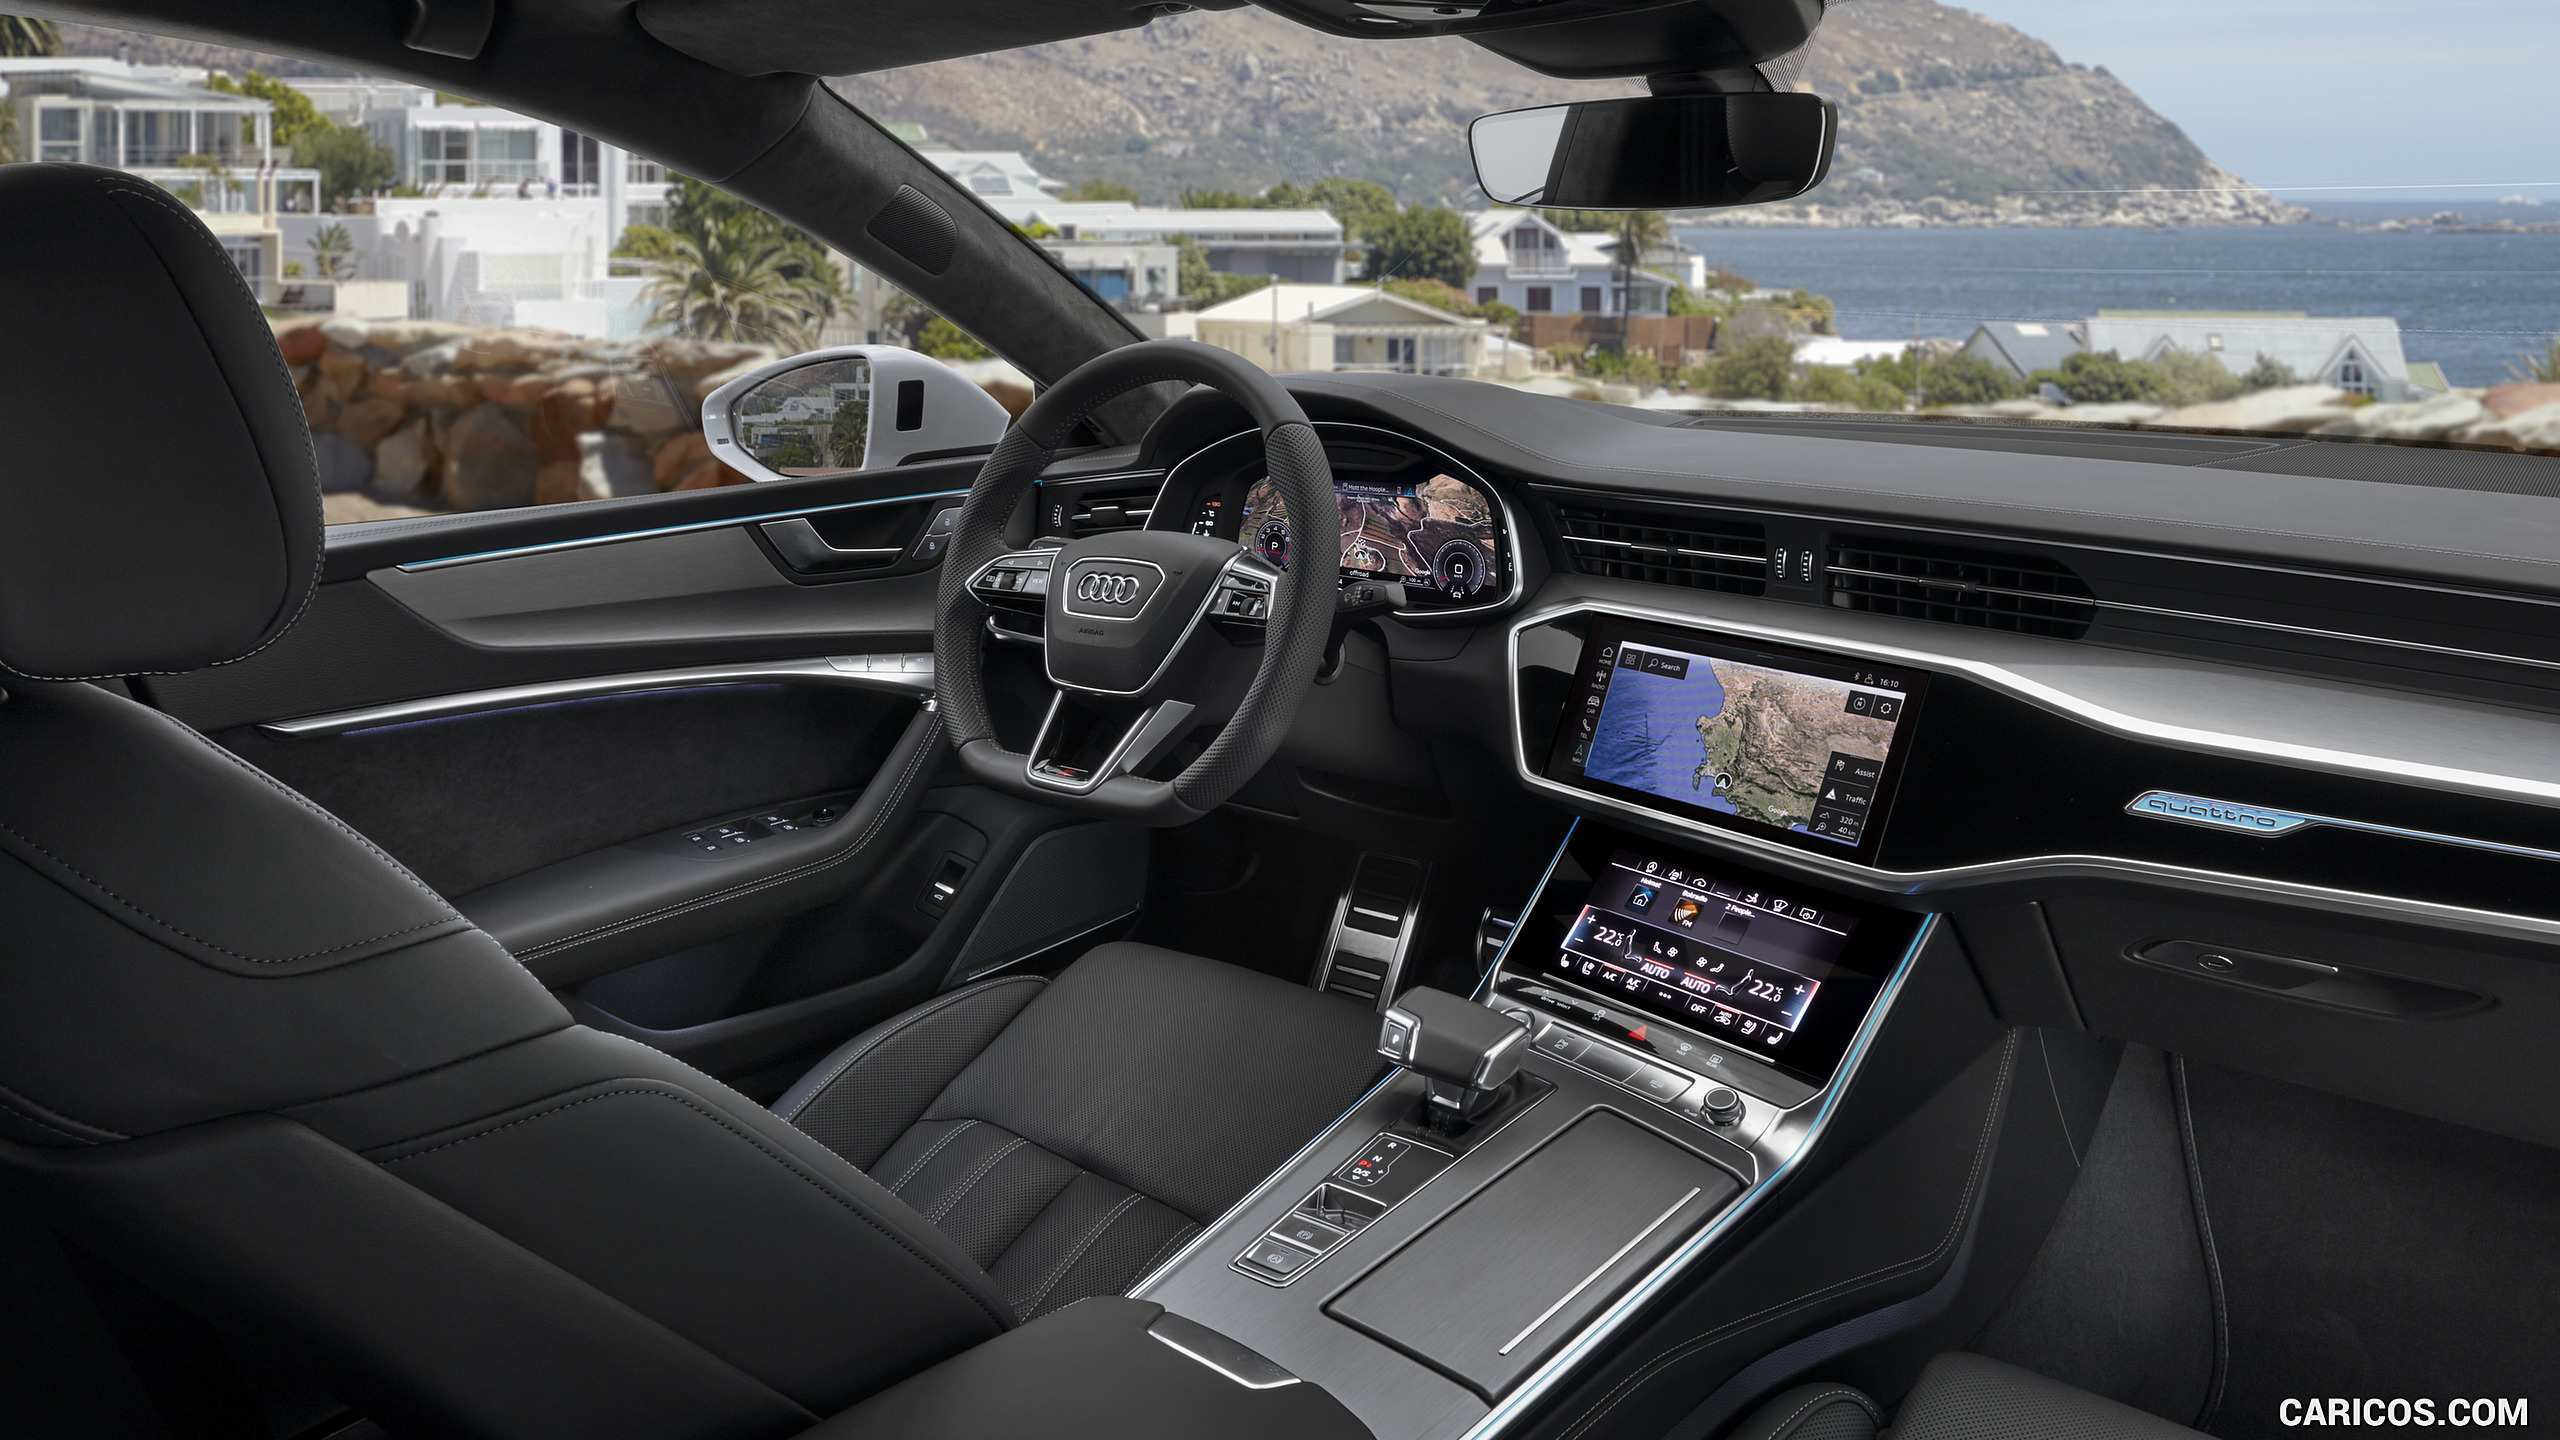 78 Gallery of 2019 Audi A7 Interior New Concept for 2019 Audi A7 Interior